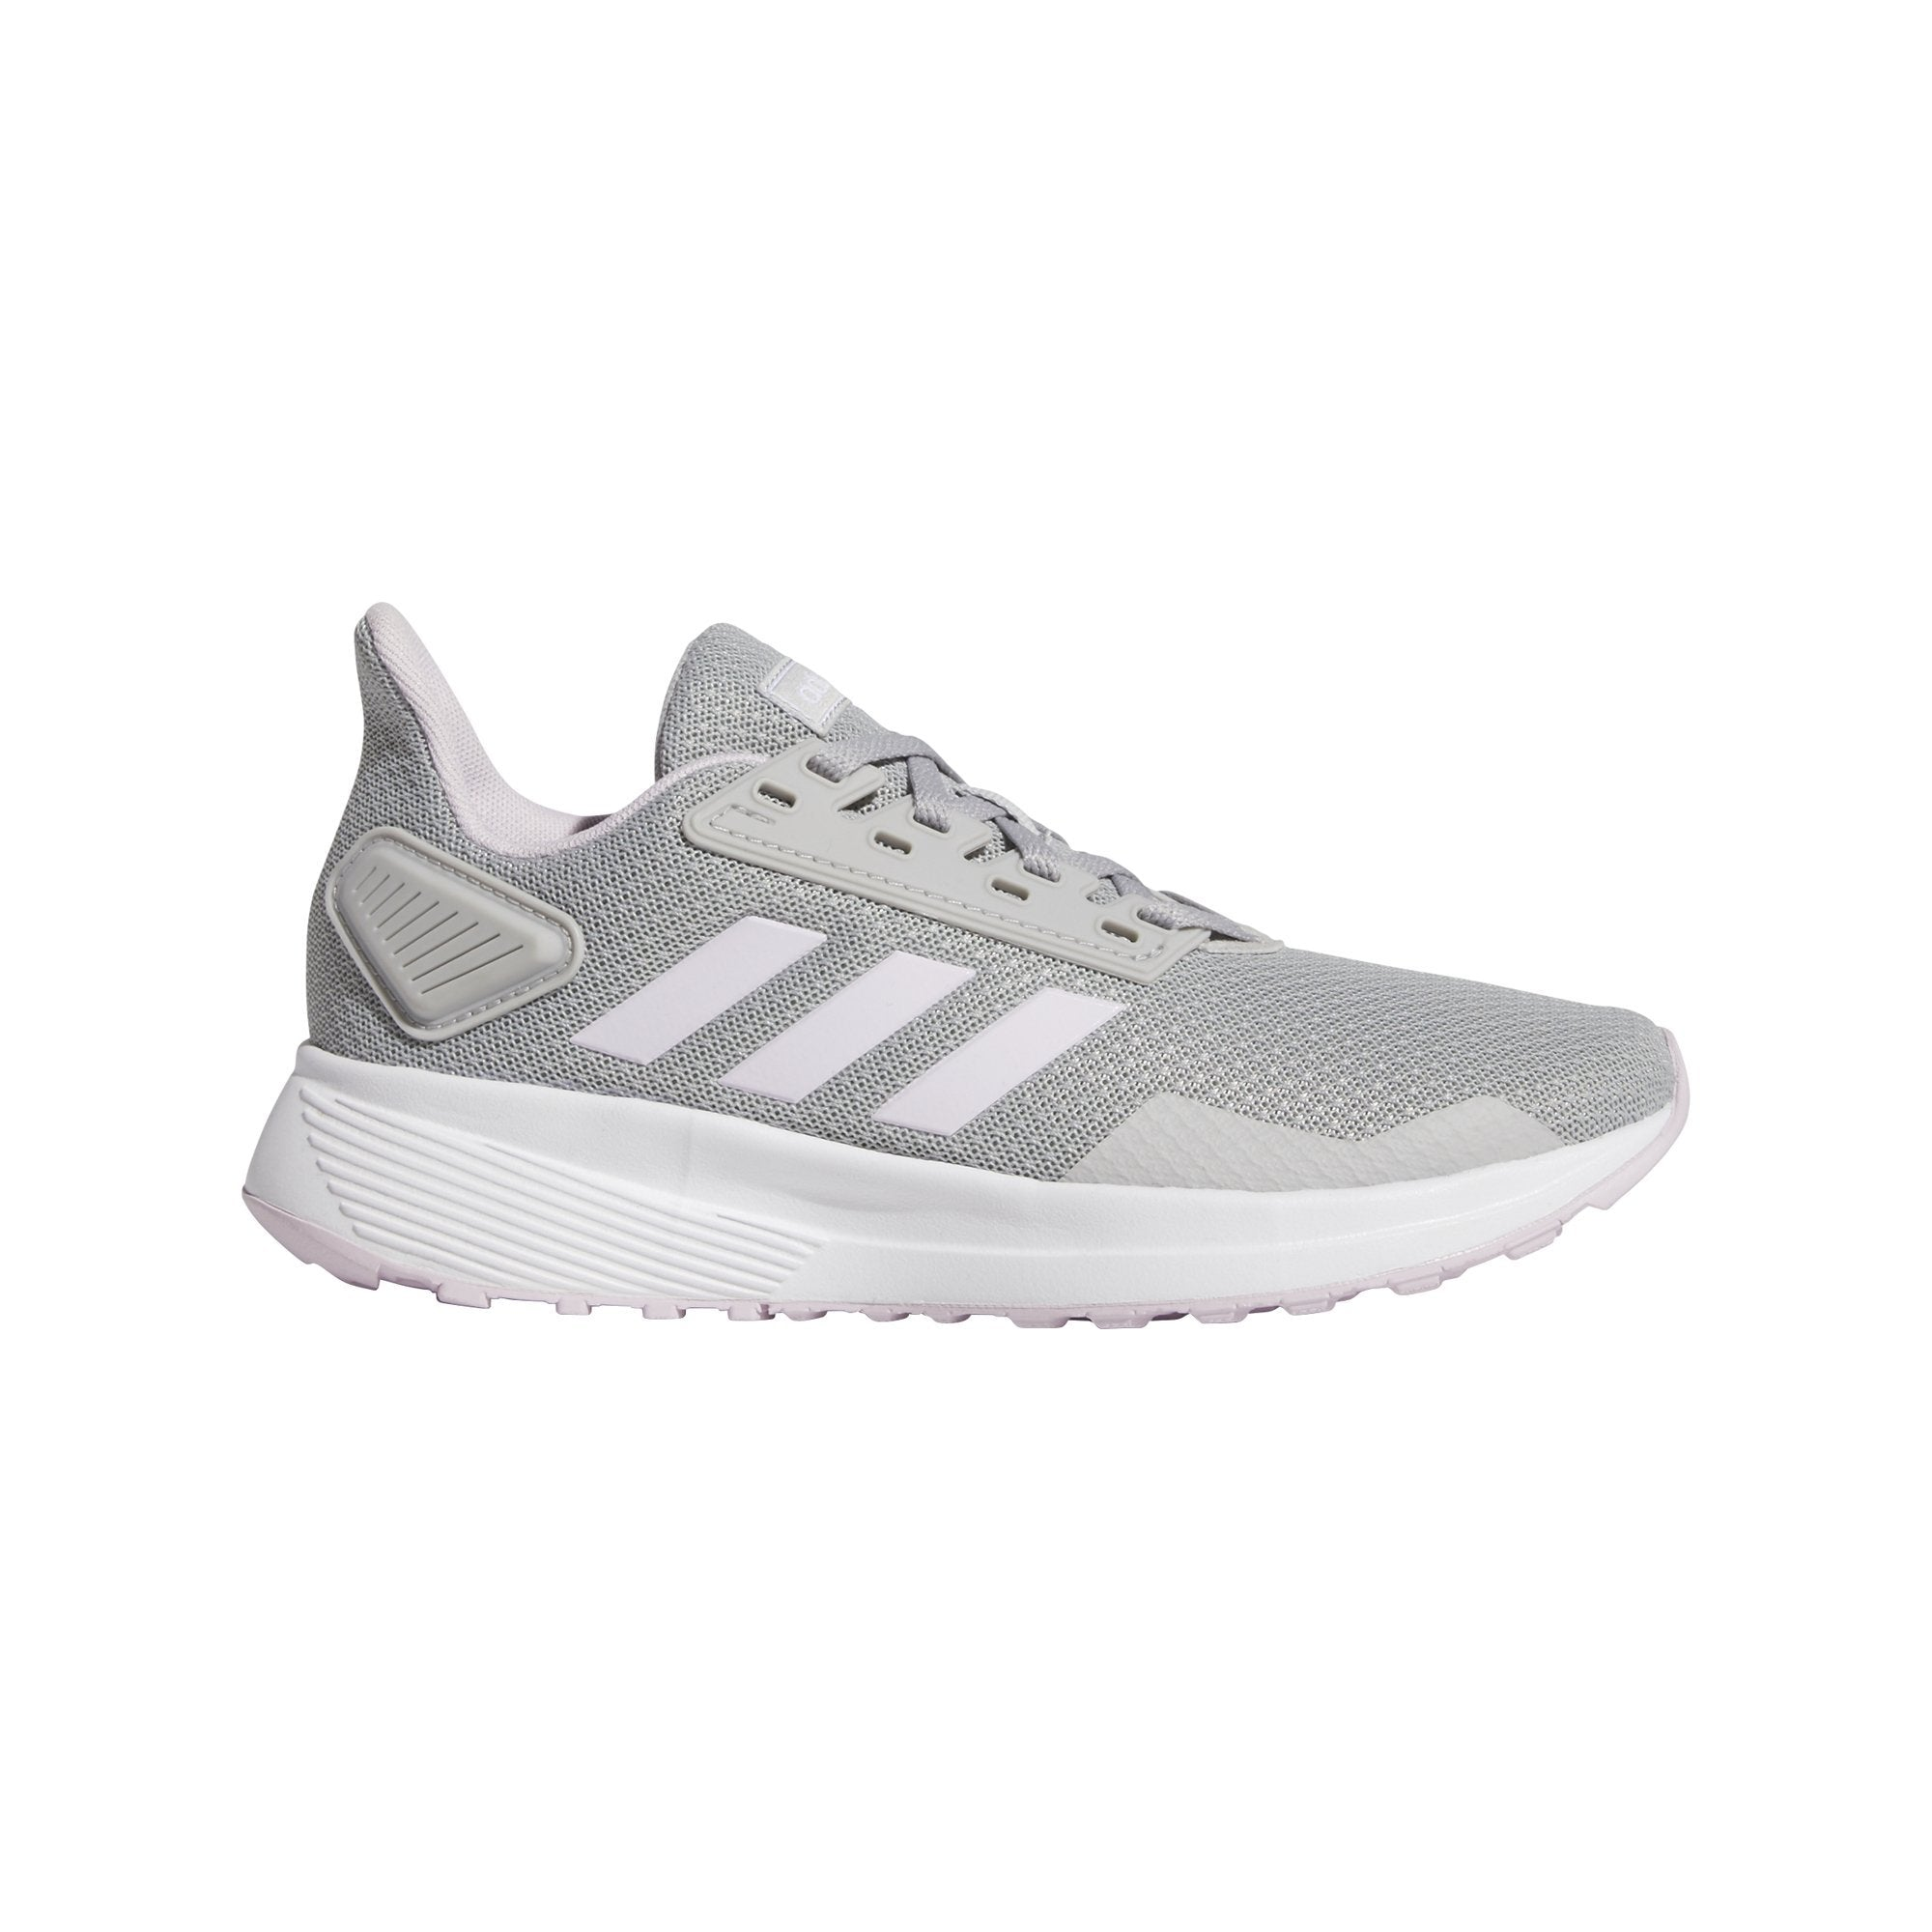 Adidas Kids Duramo 9 Shoes - GREY TWO F17/AERO PINK S18/ftwr white SP-Footwear-Kids Adidas